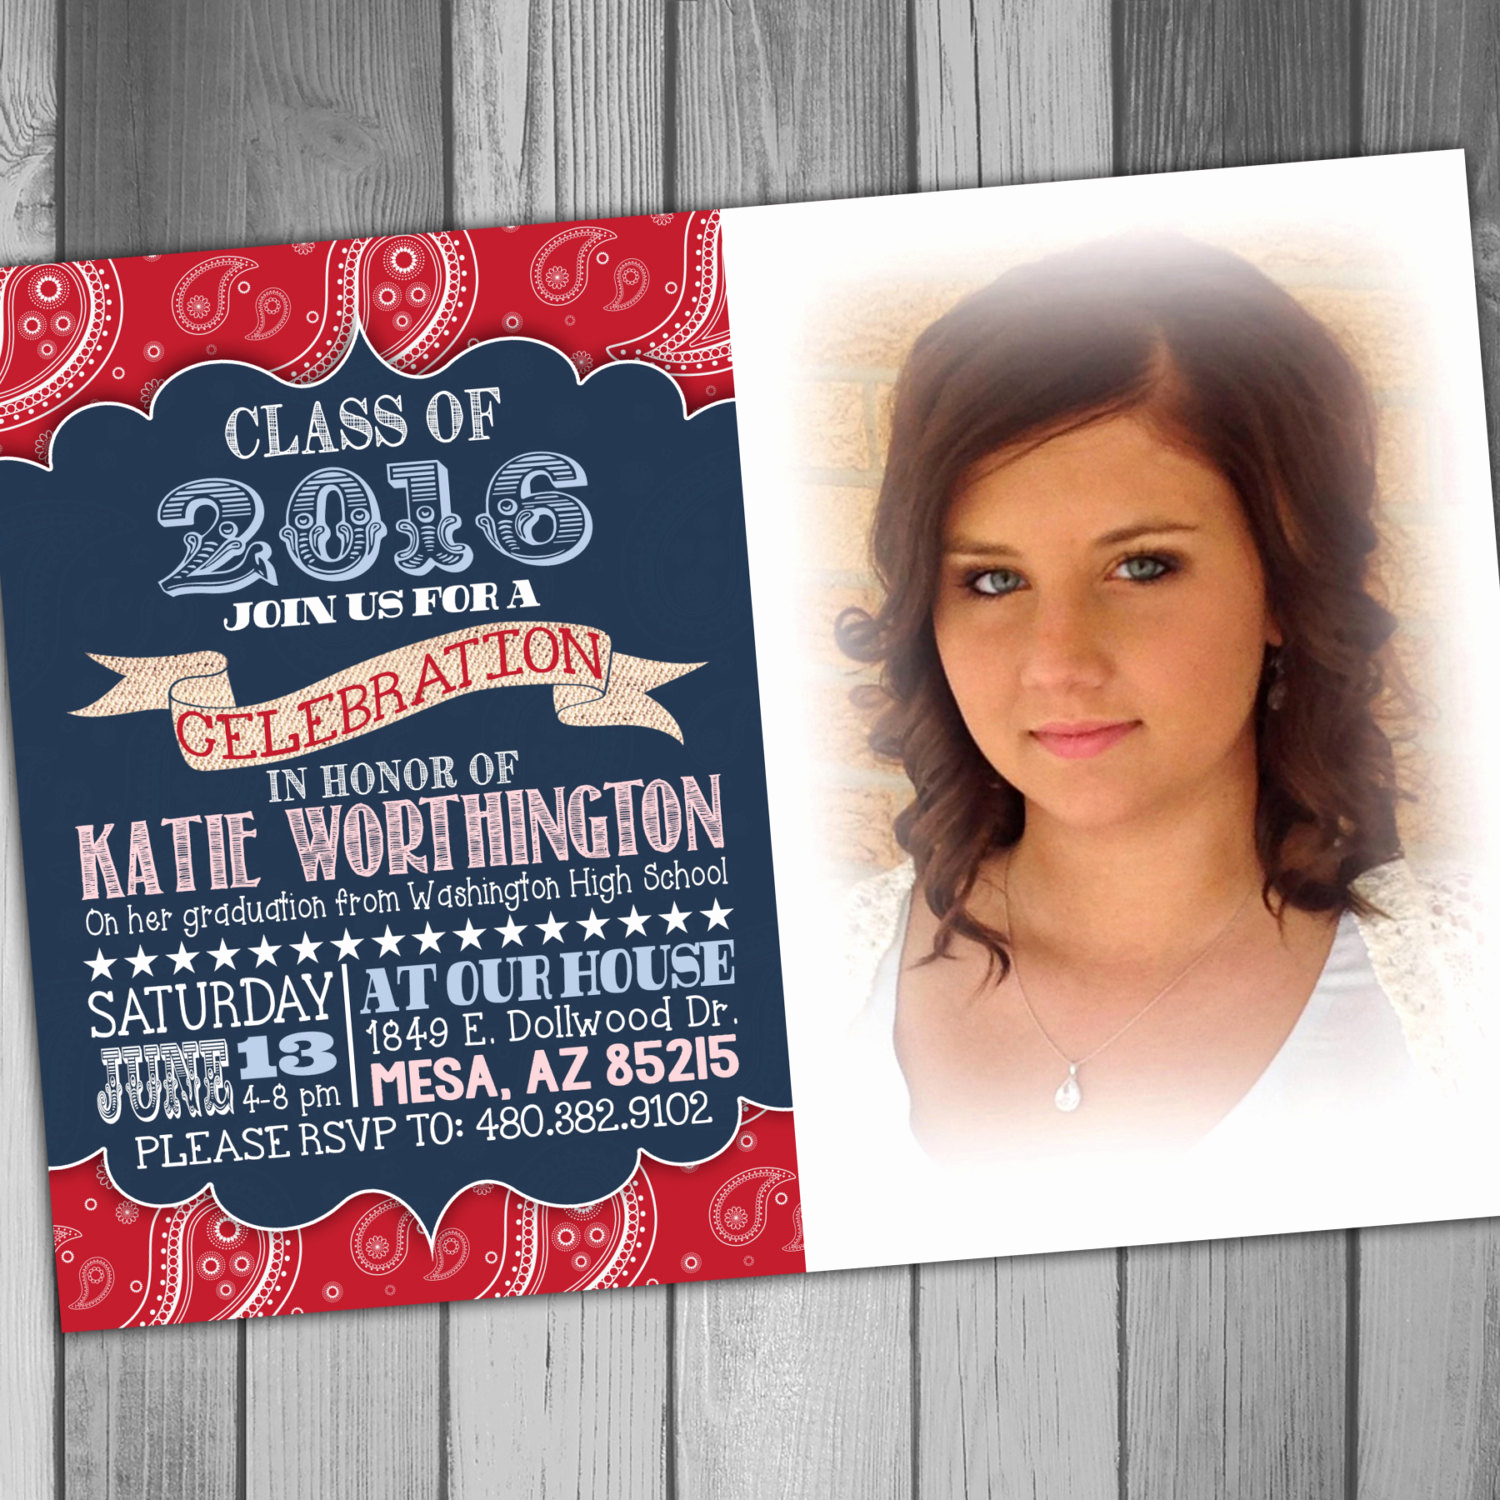 Graduation Announcement and Party Invitation Beautiful High School Graduation Party Invitation College Graduation